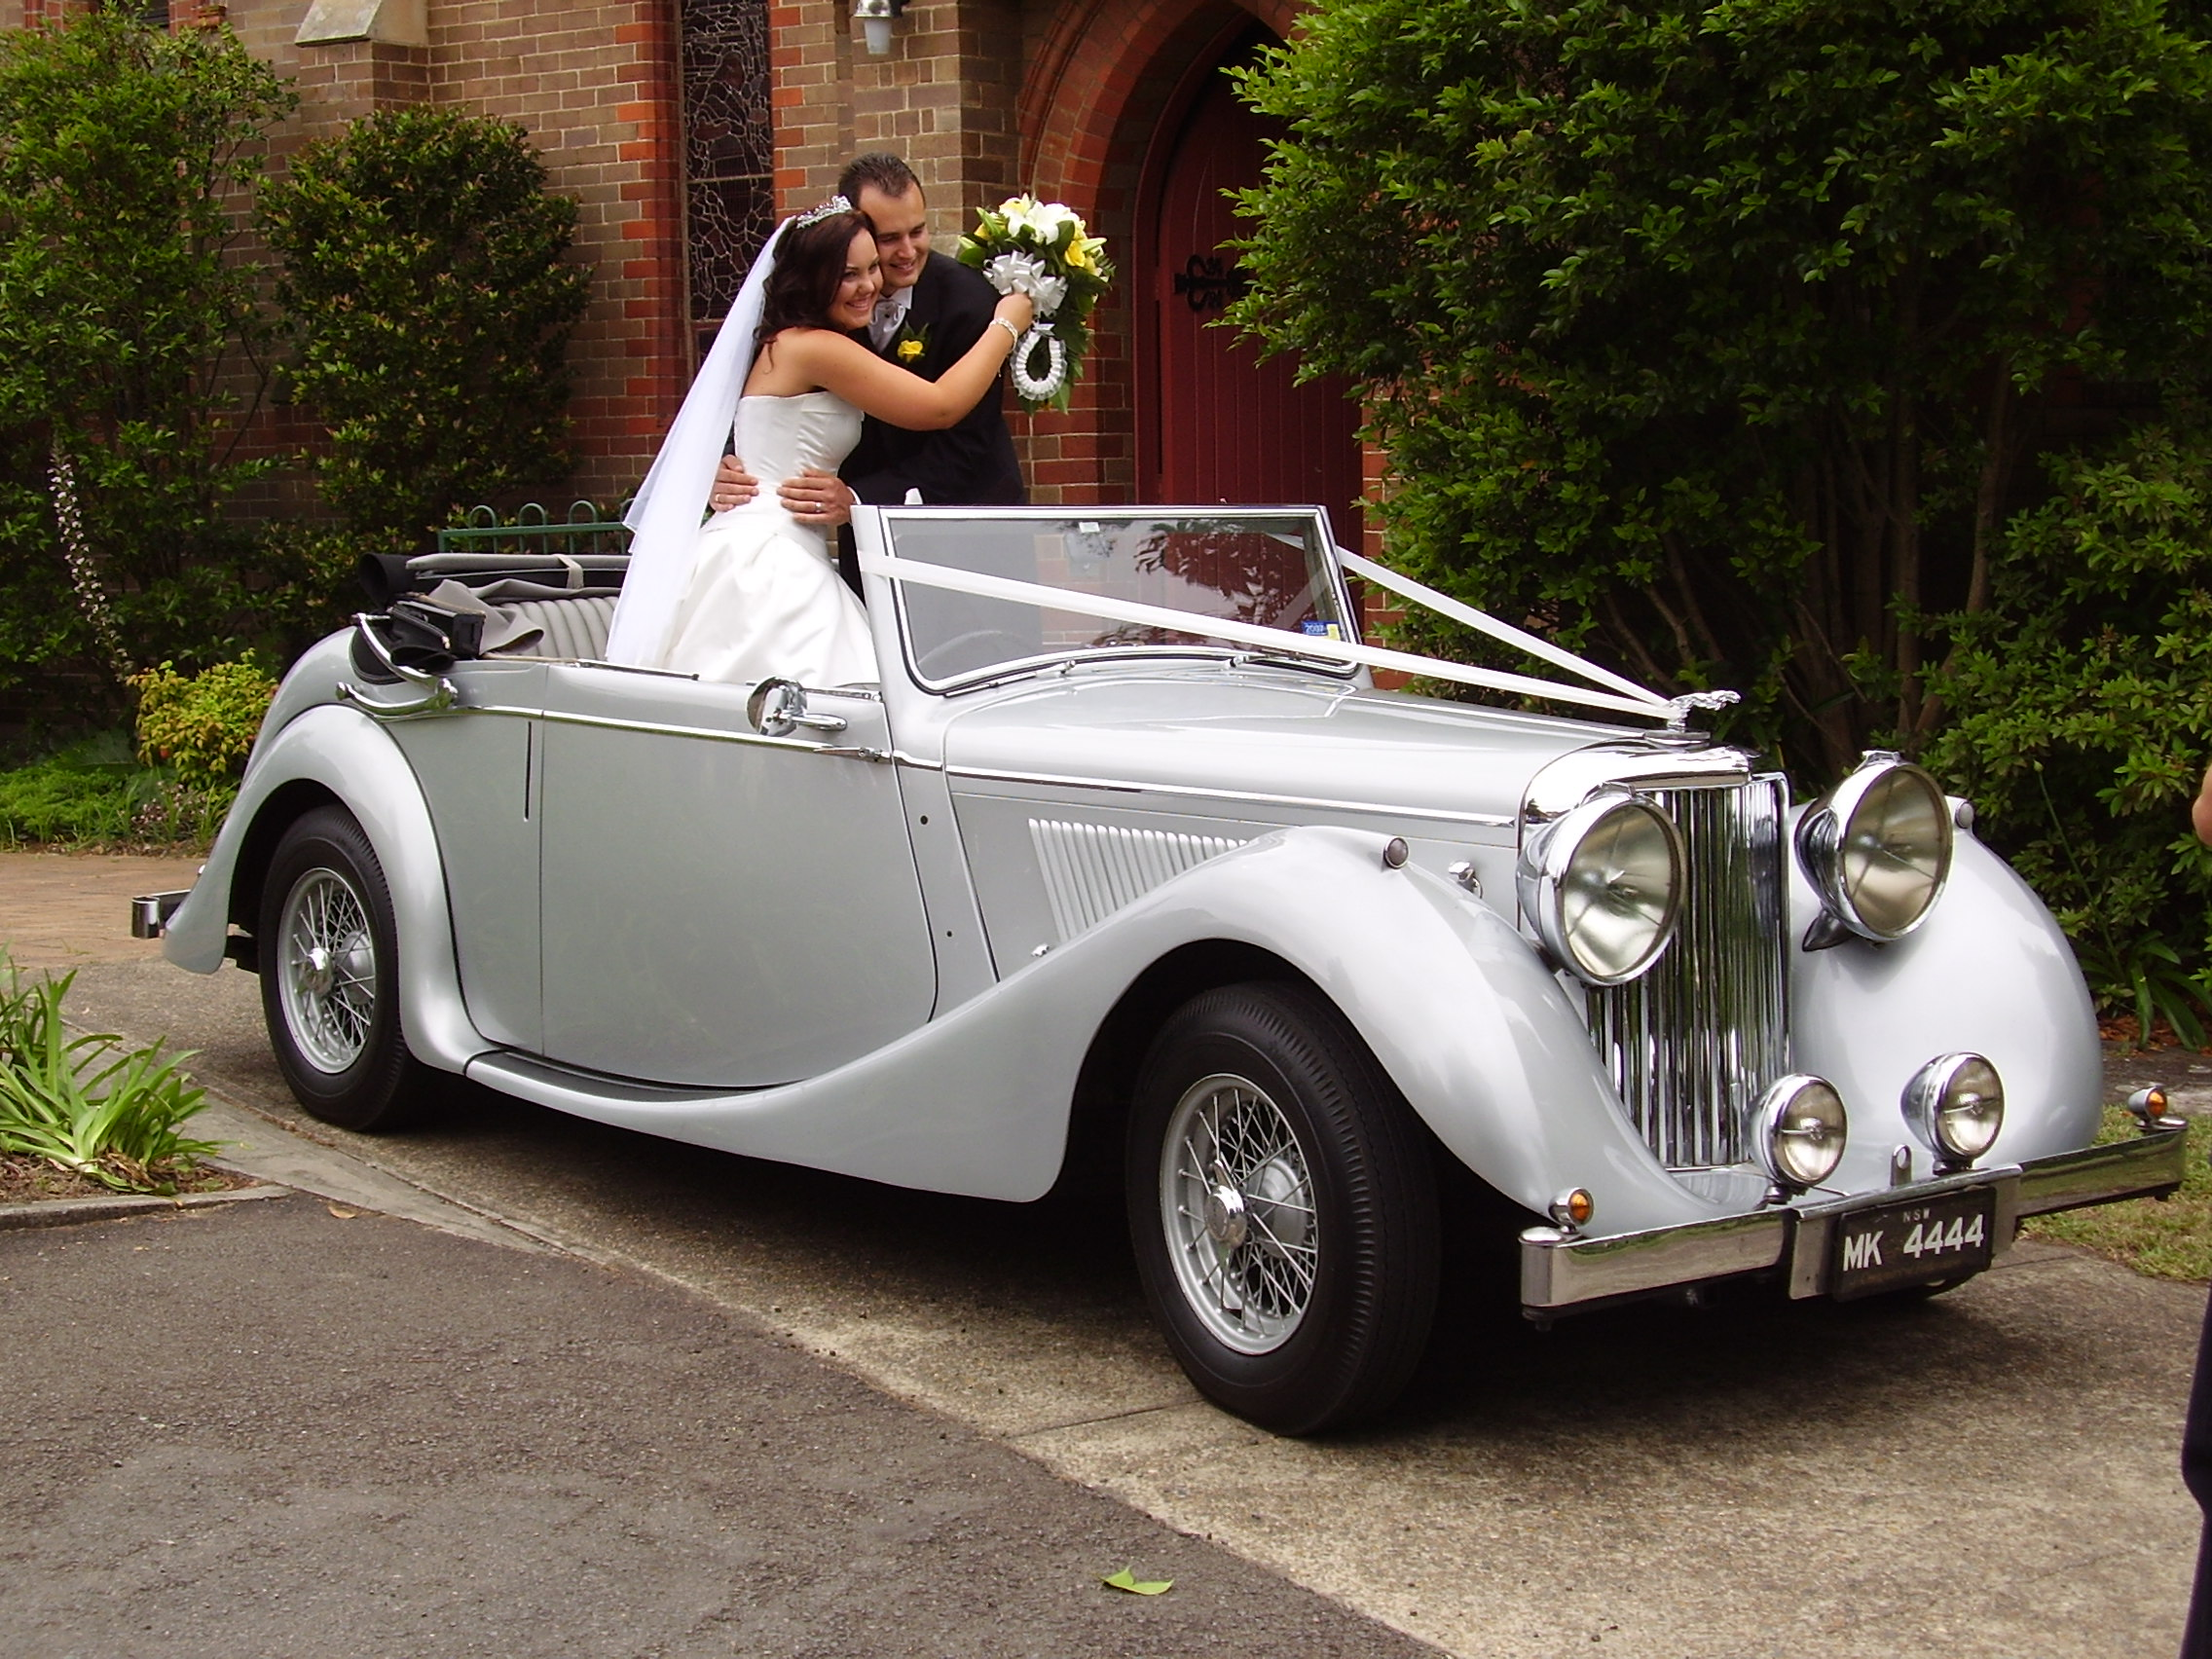 Classic Bridal Cars Wedding Cars True Bride